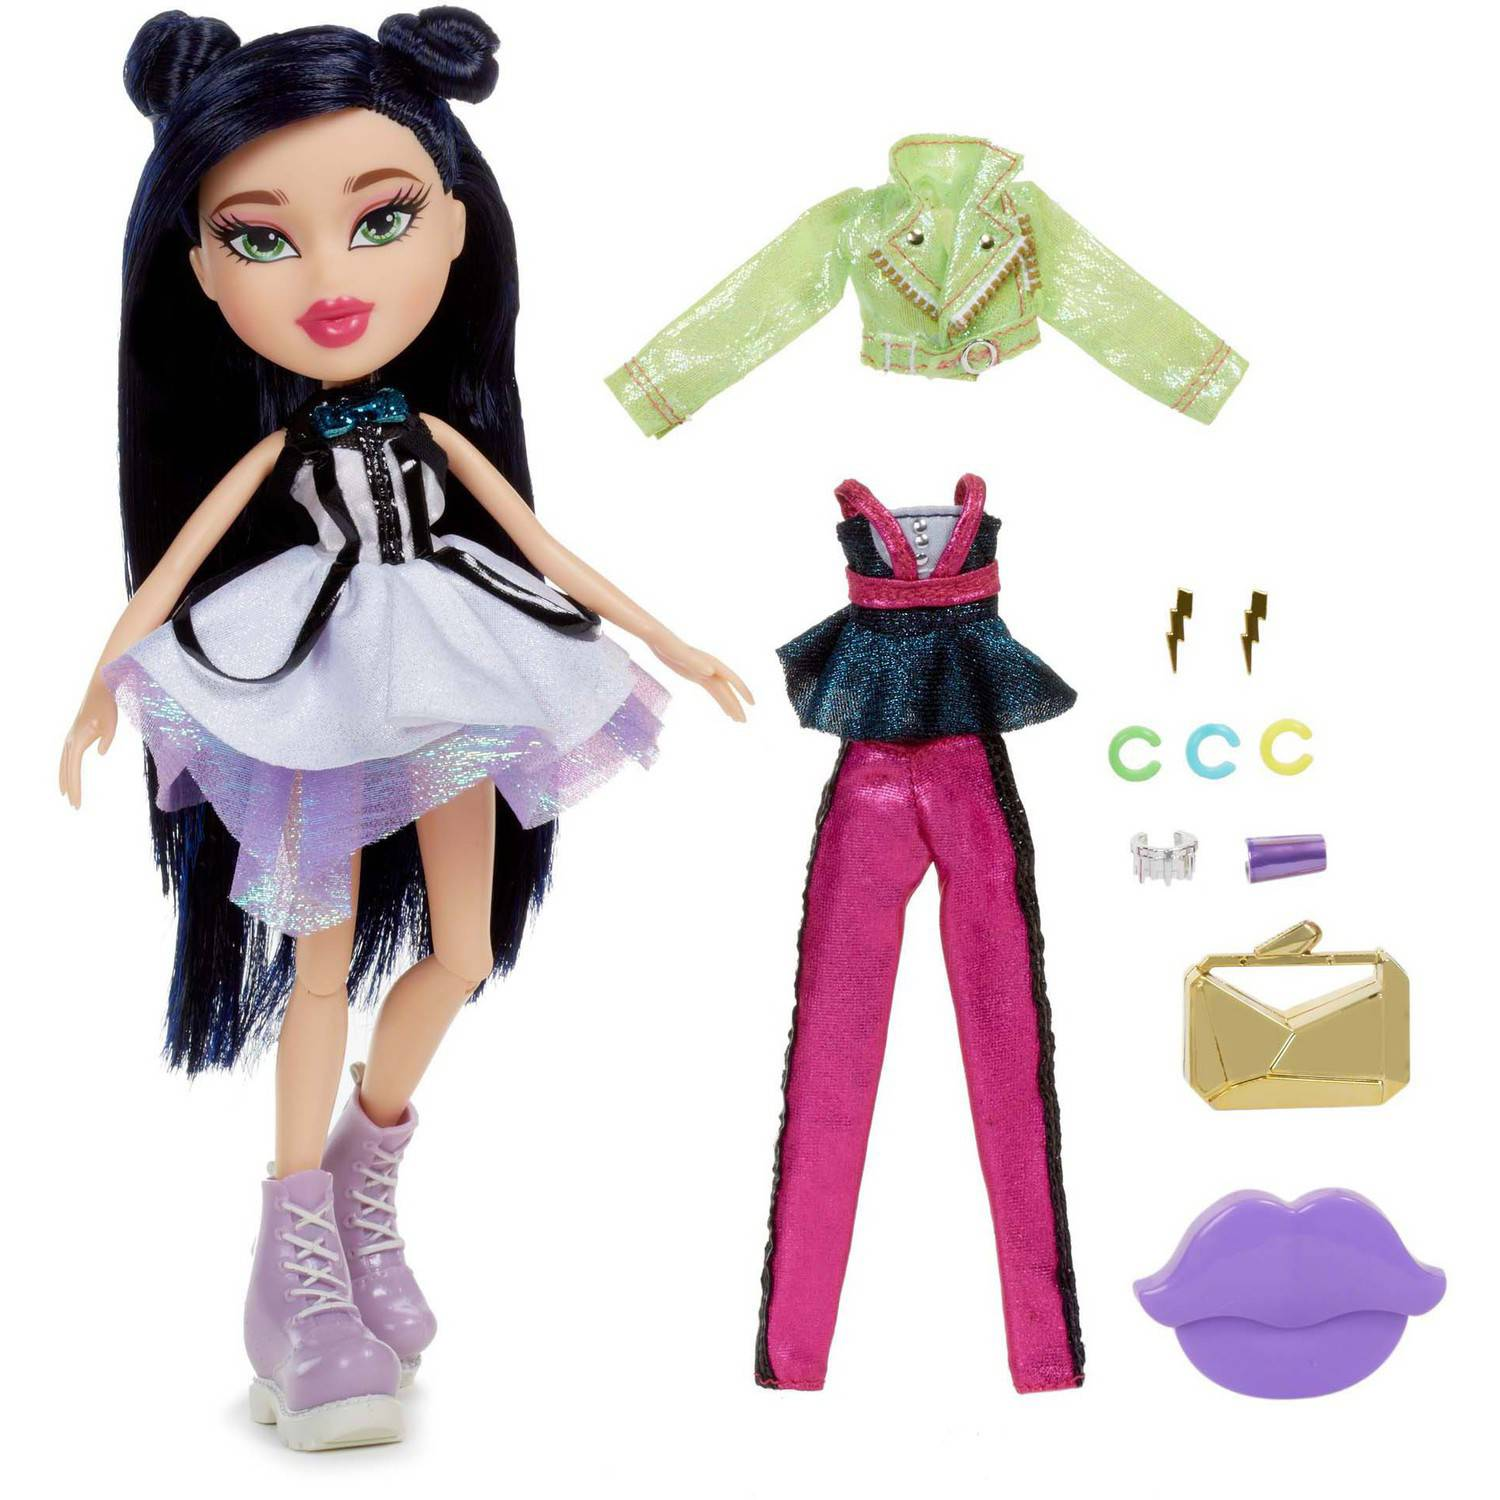 Bratz Metallic Madness Doll, Jade